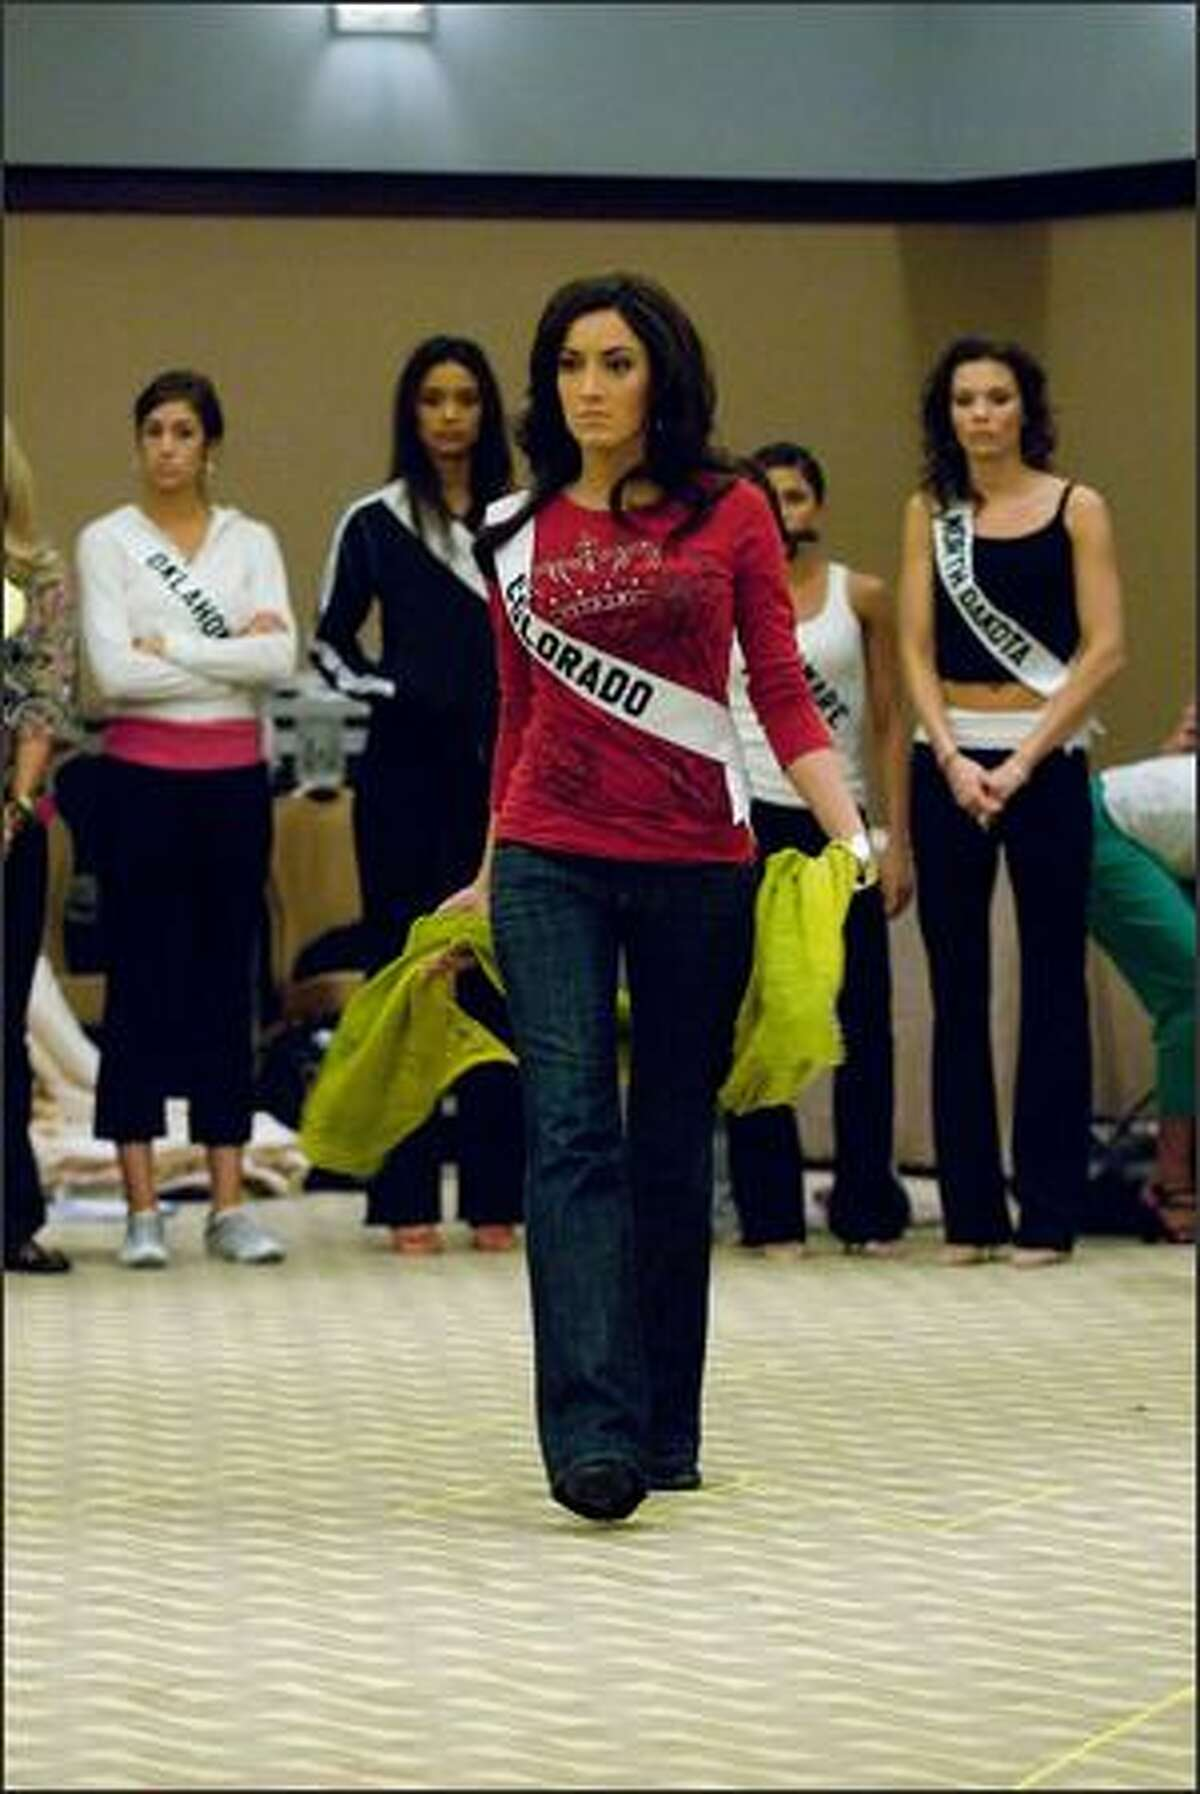 Keena Bonella, Miss Colorado USA 2007, rehearses for the Miss USA 2007 competition at the Wilshire Grand Hotel on March 11.